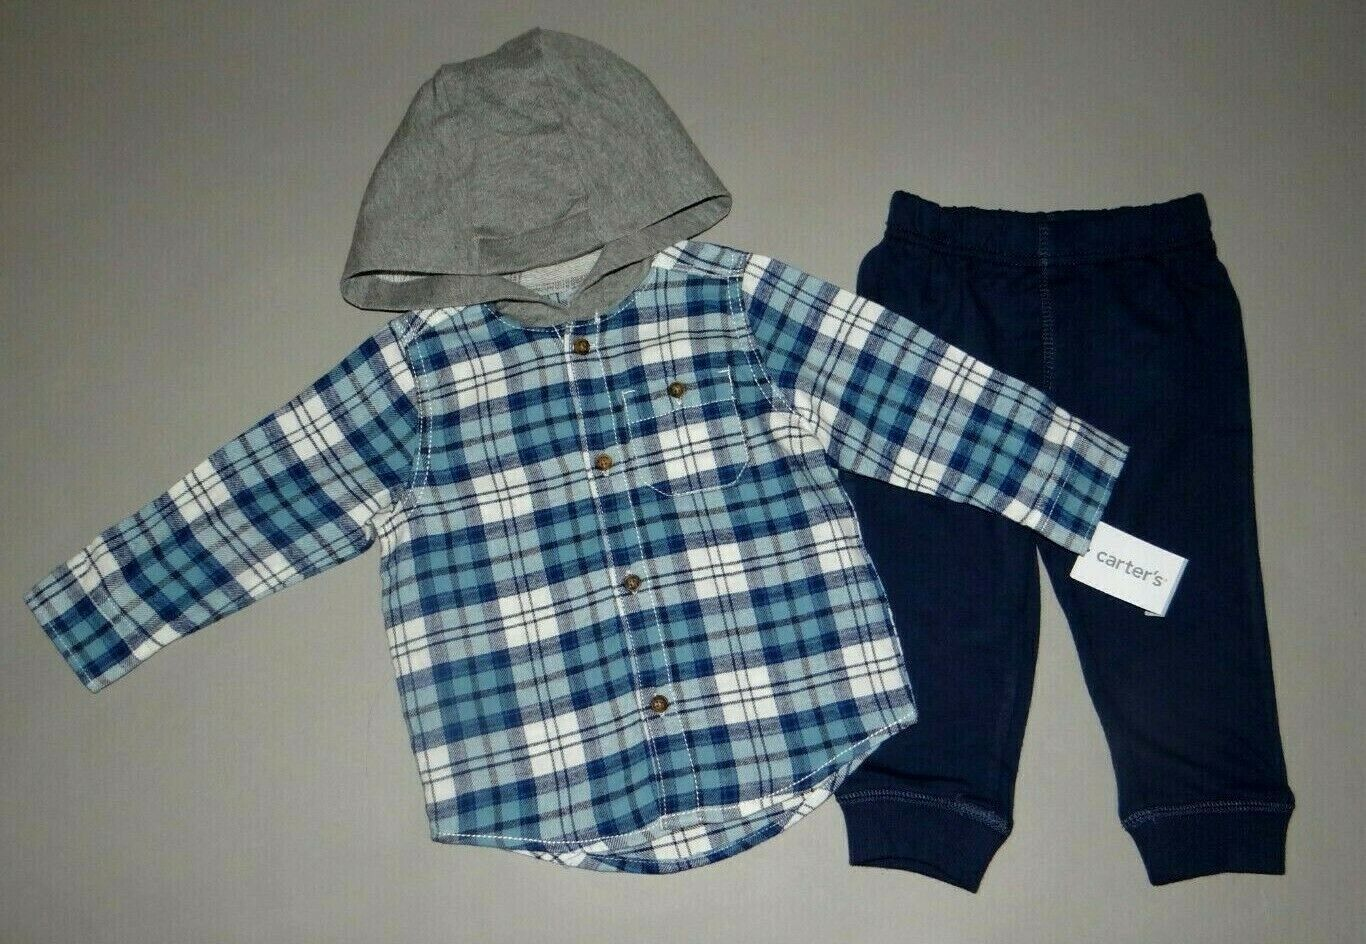 Baby boy clothes, 5T, Carter's 2 piece flannel set/ SEE DETA